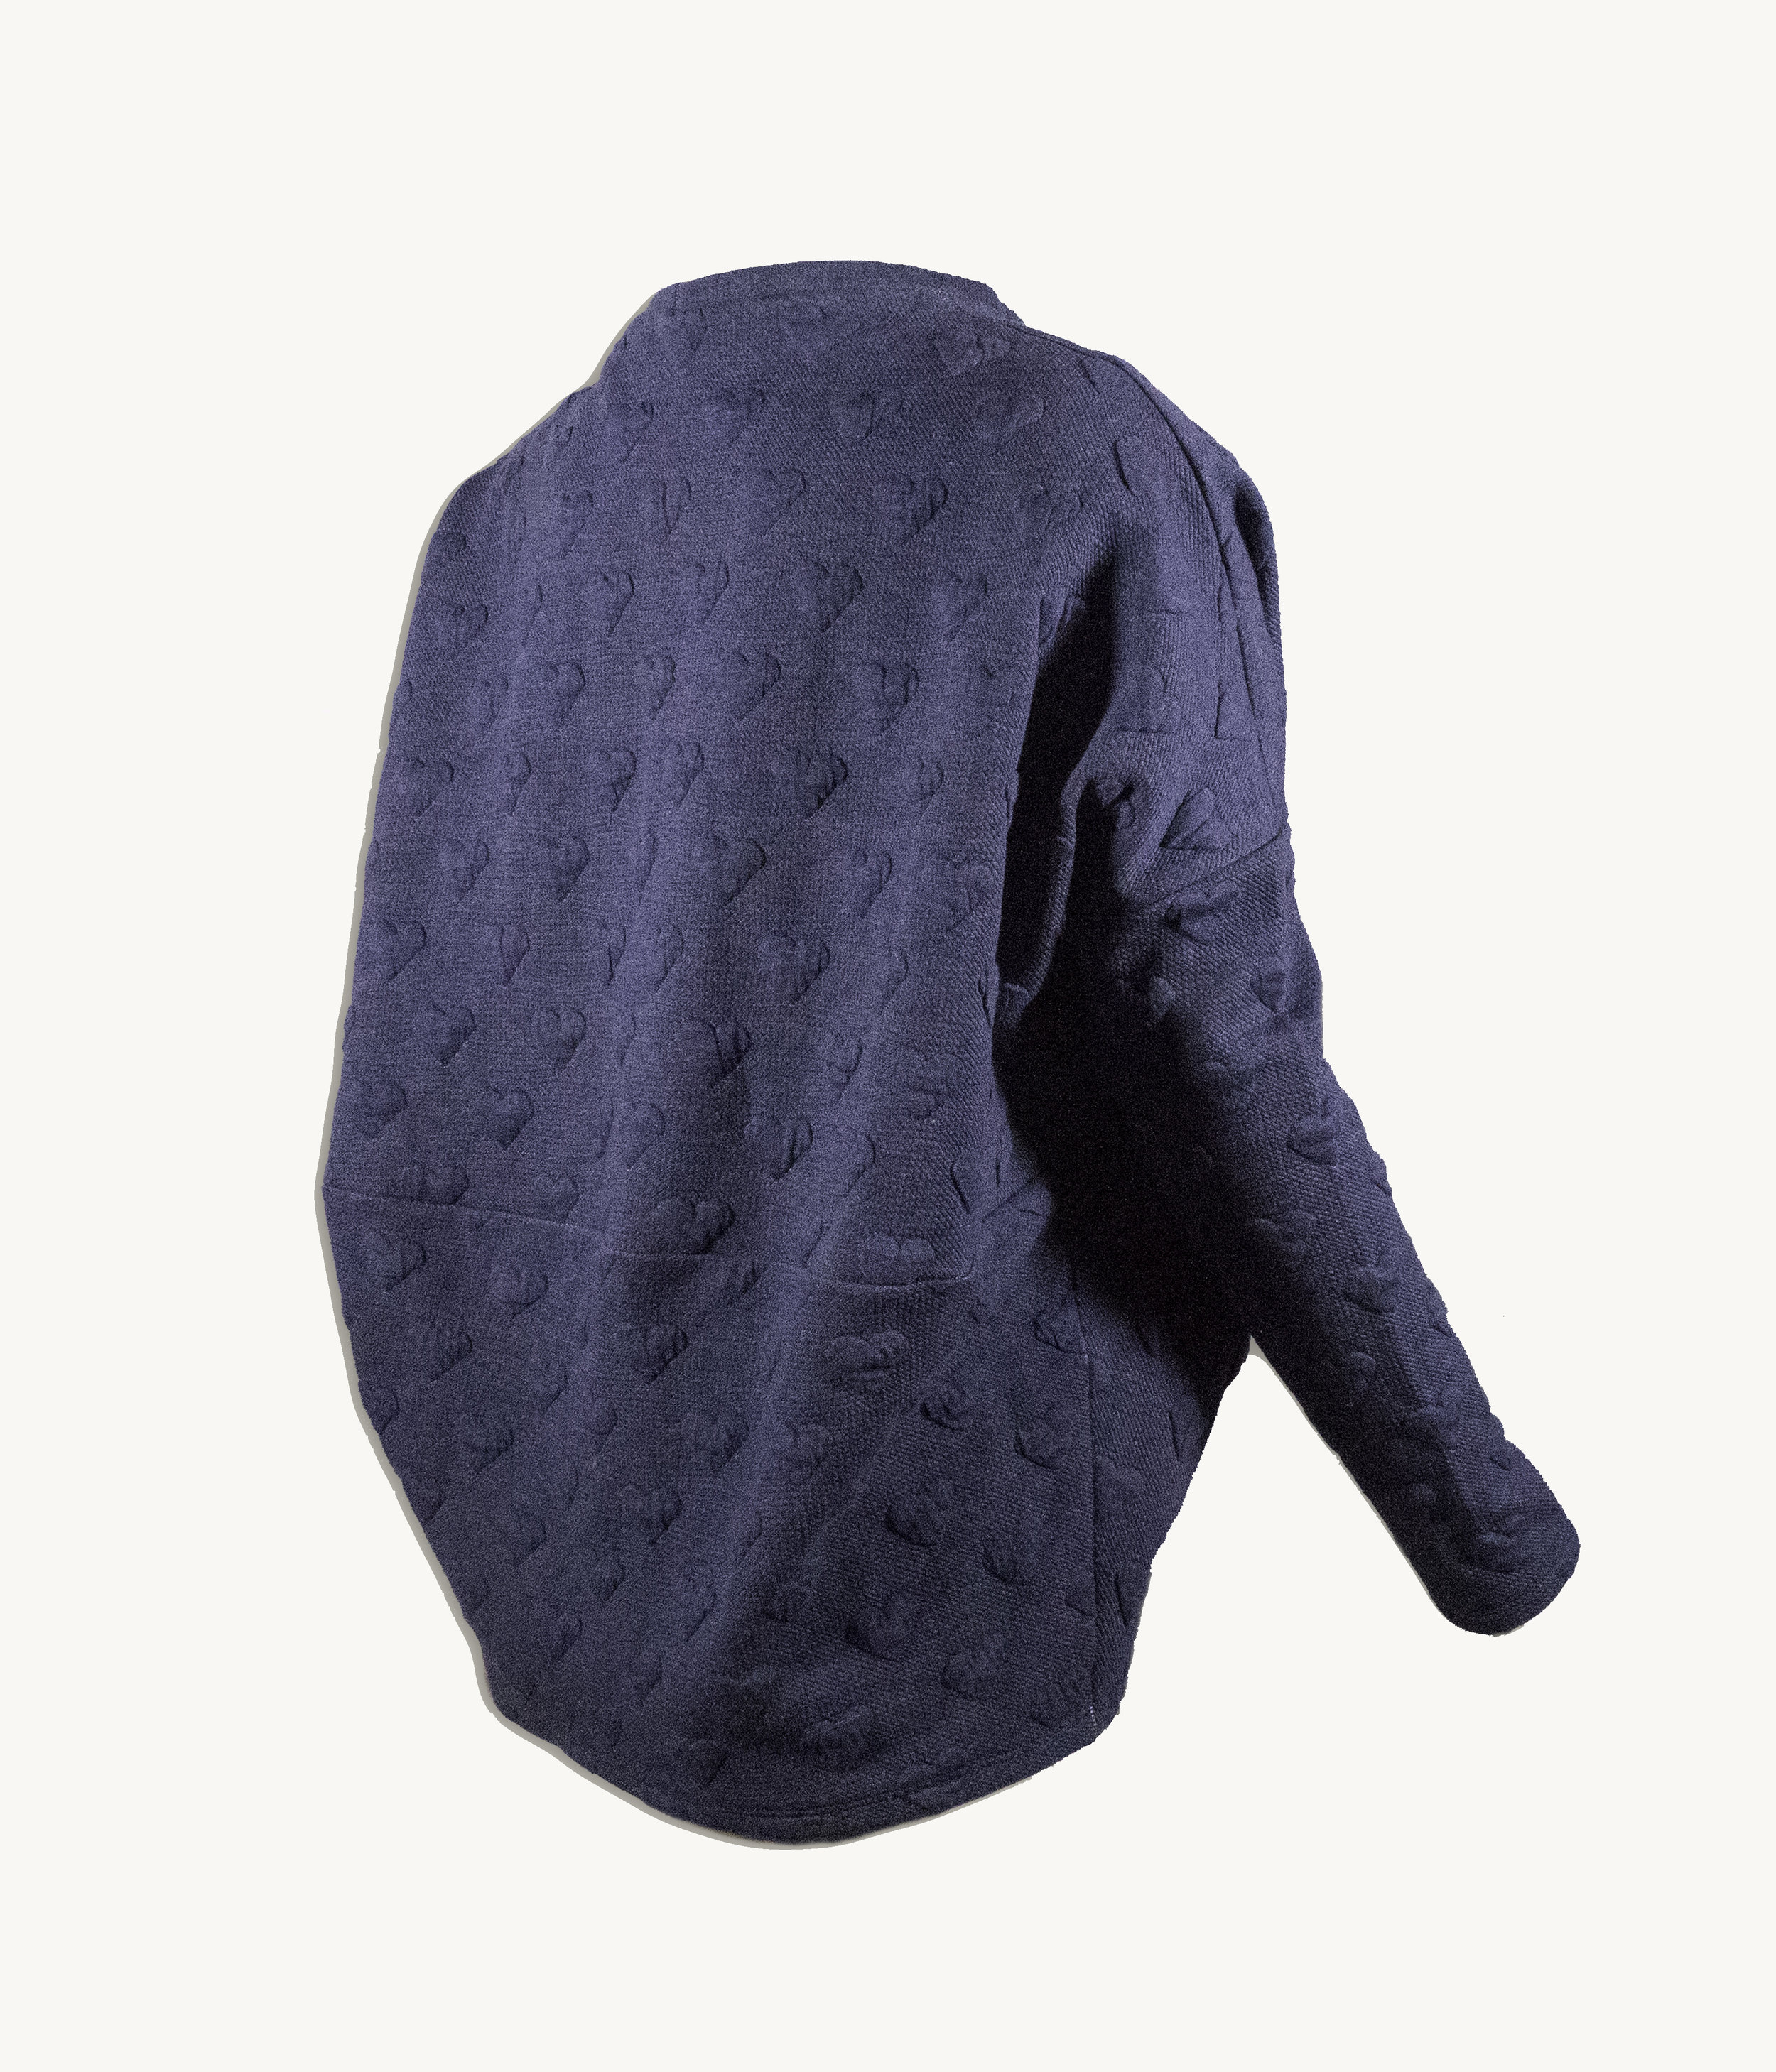 Back view of the Slate Blue color option in size Small.